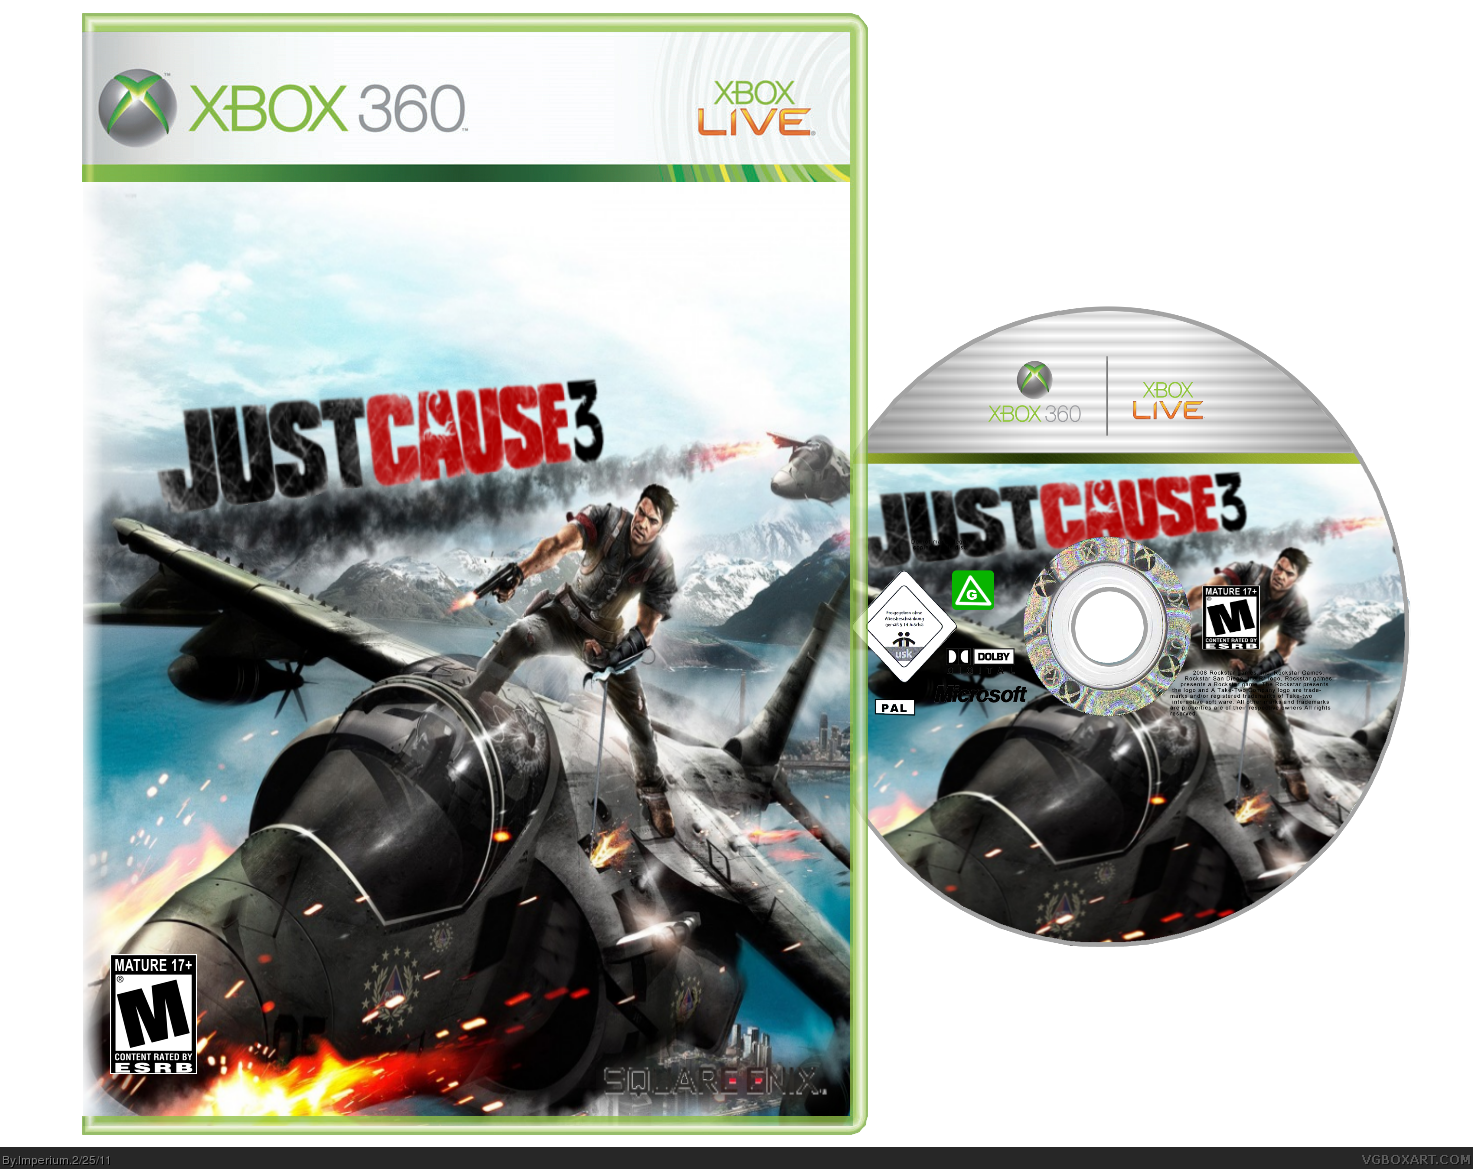 Just cause 3 Xbox 360 Box Art Cover by Imperium